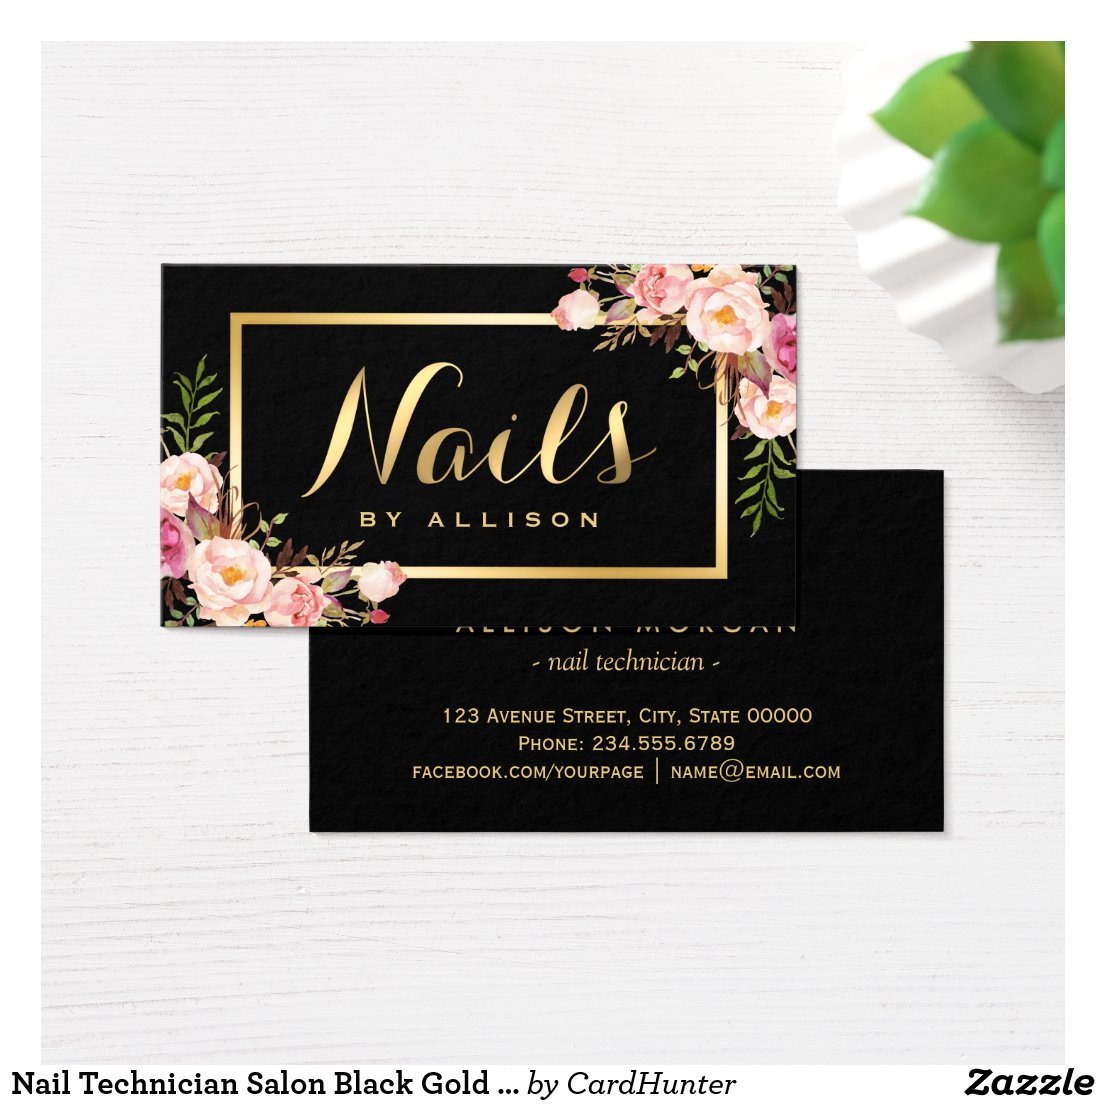 Nail Technician Salon Black Gold Floral Script Business Card